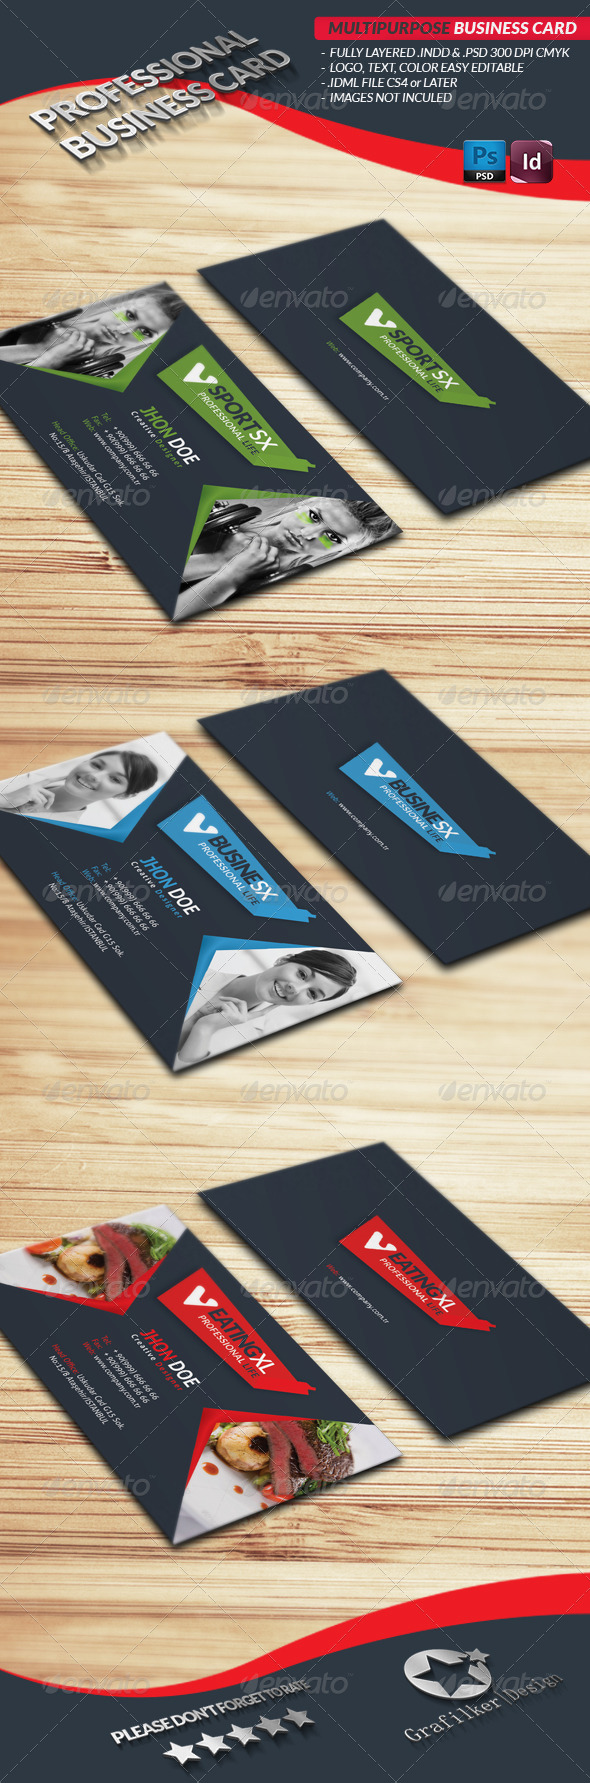 Multipurpose Business Card - Industry Specific Business Cards